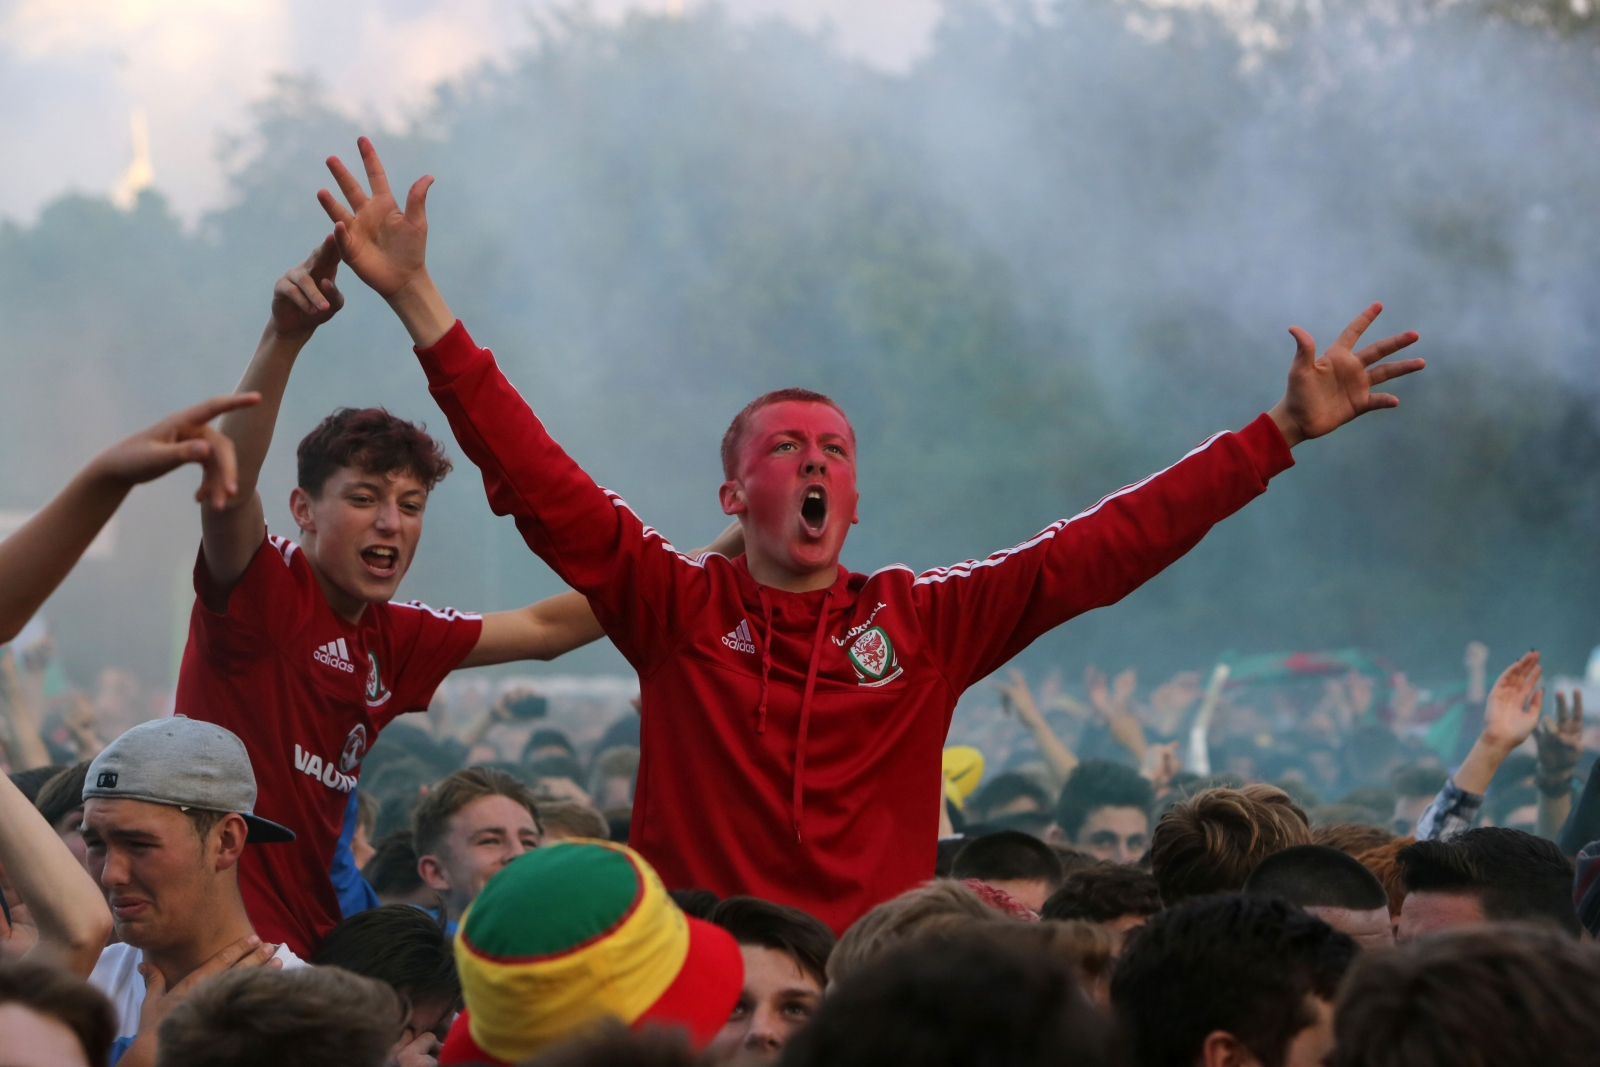 Welsh fans cheer their team